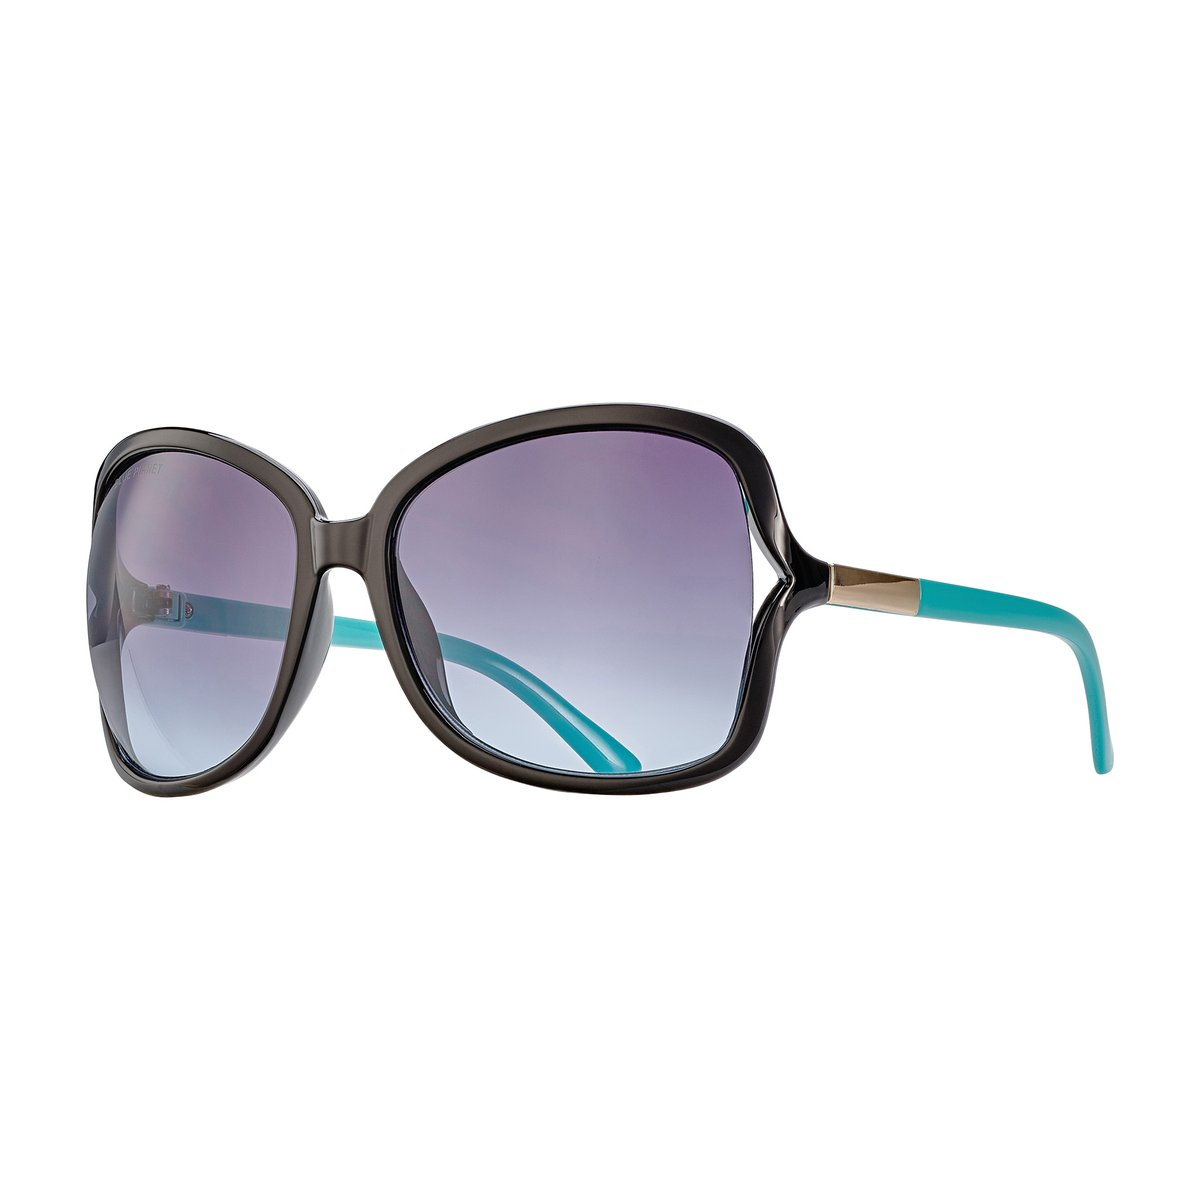 Eco-Process Polarized Sunglasses - These ladies from Blue Planet block UVA and UVB, are affordable AND made with 60-75% recycled materials.